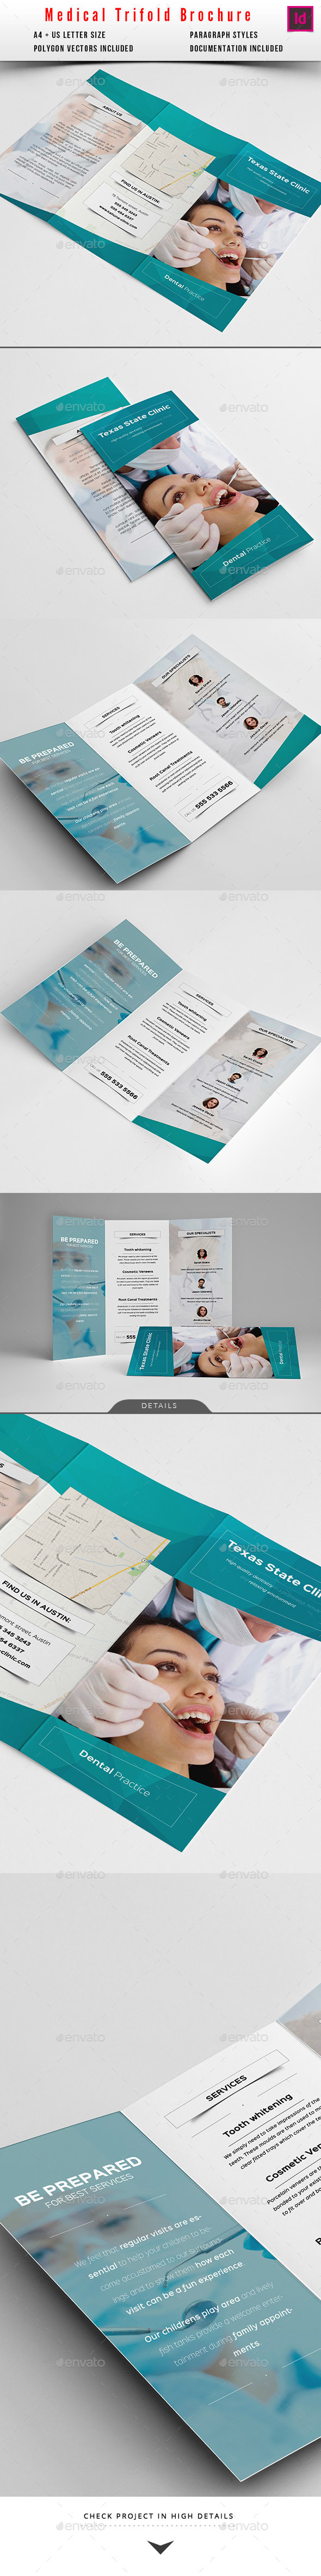 GraphicRiver Medical Multipurpose Trifold Brochure 10527577